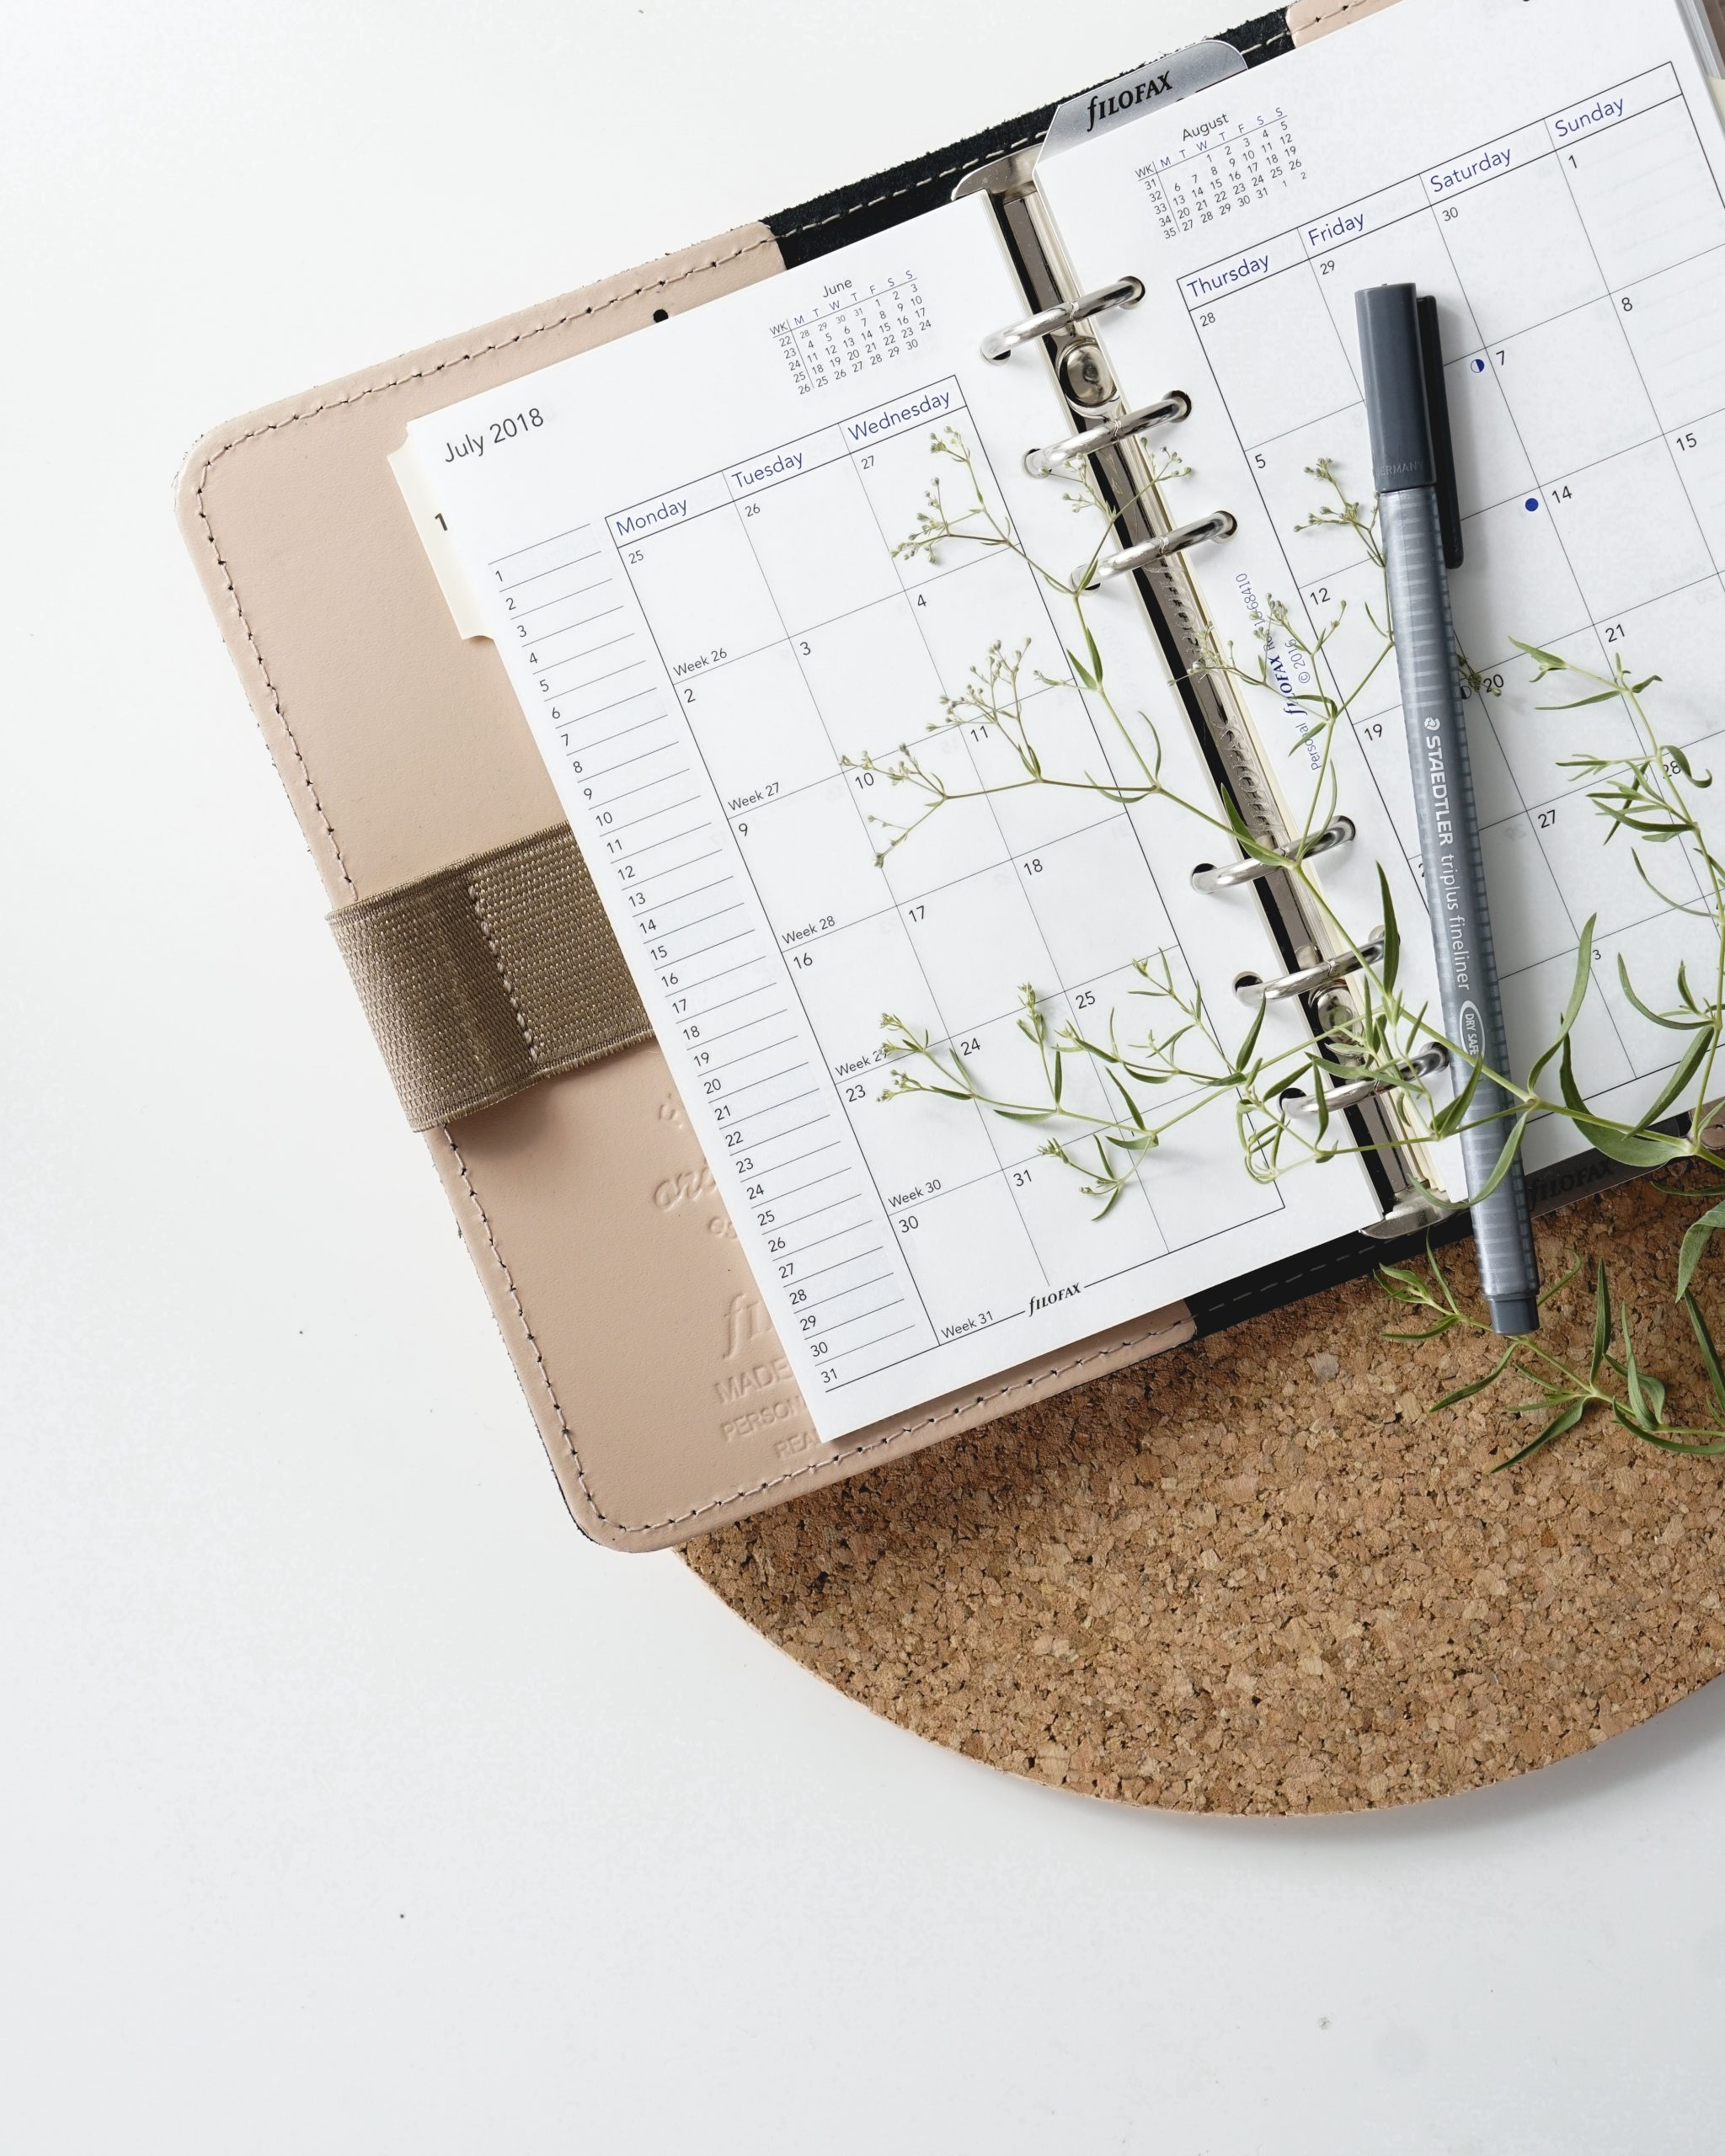 Productivity Hacks: How To Switch Up Your Routine When You're Unmotivatedf